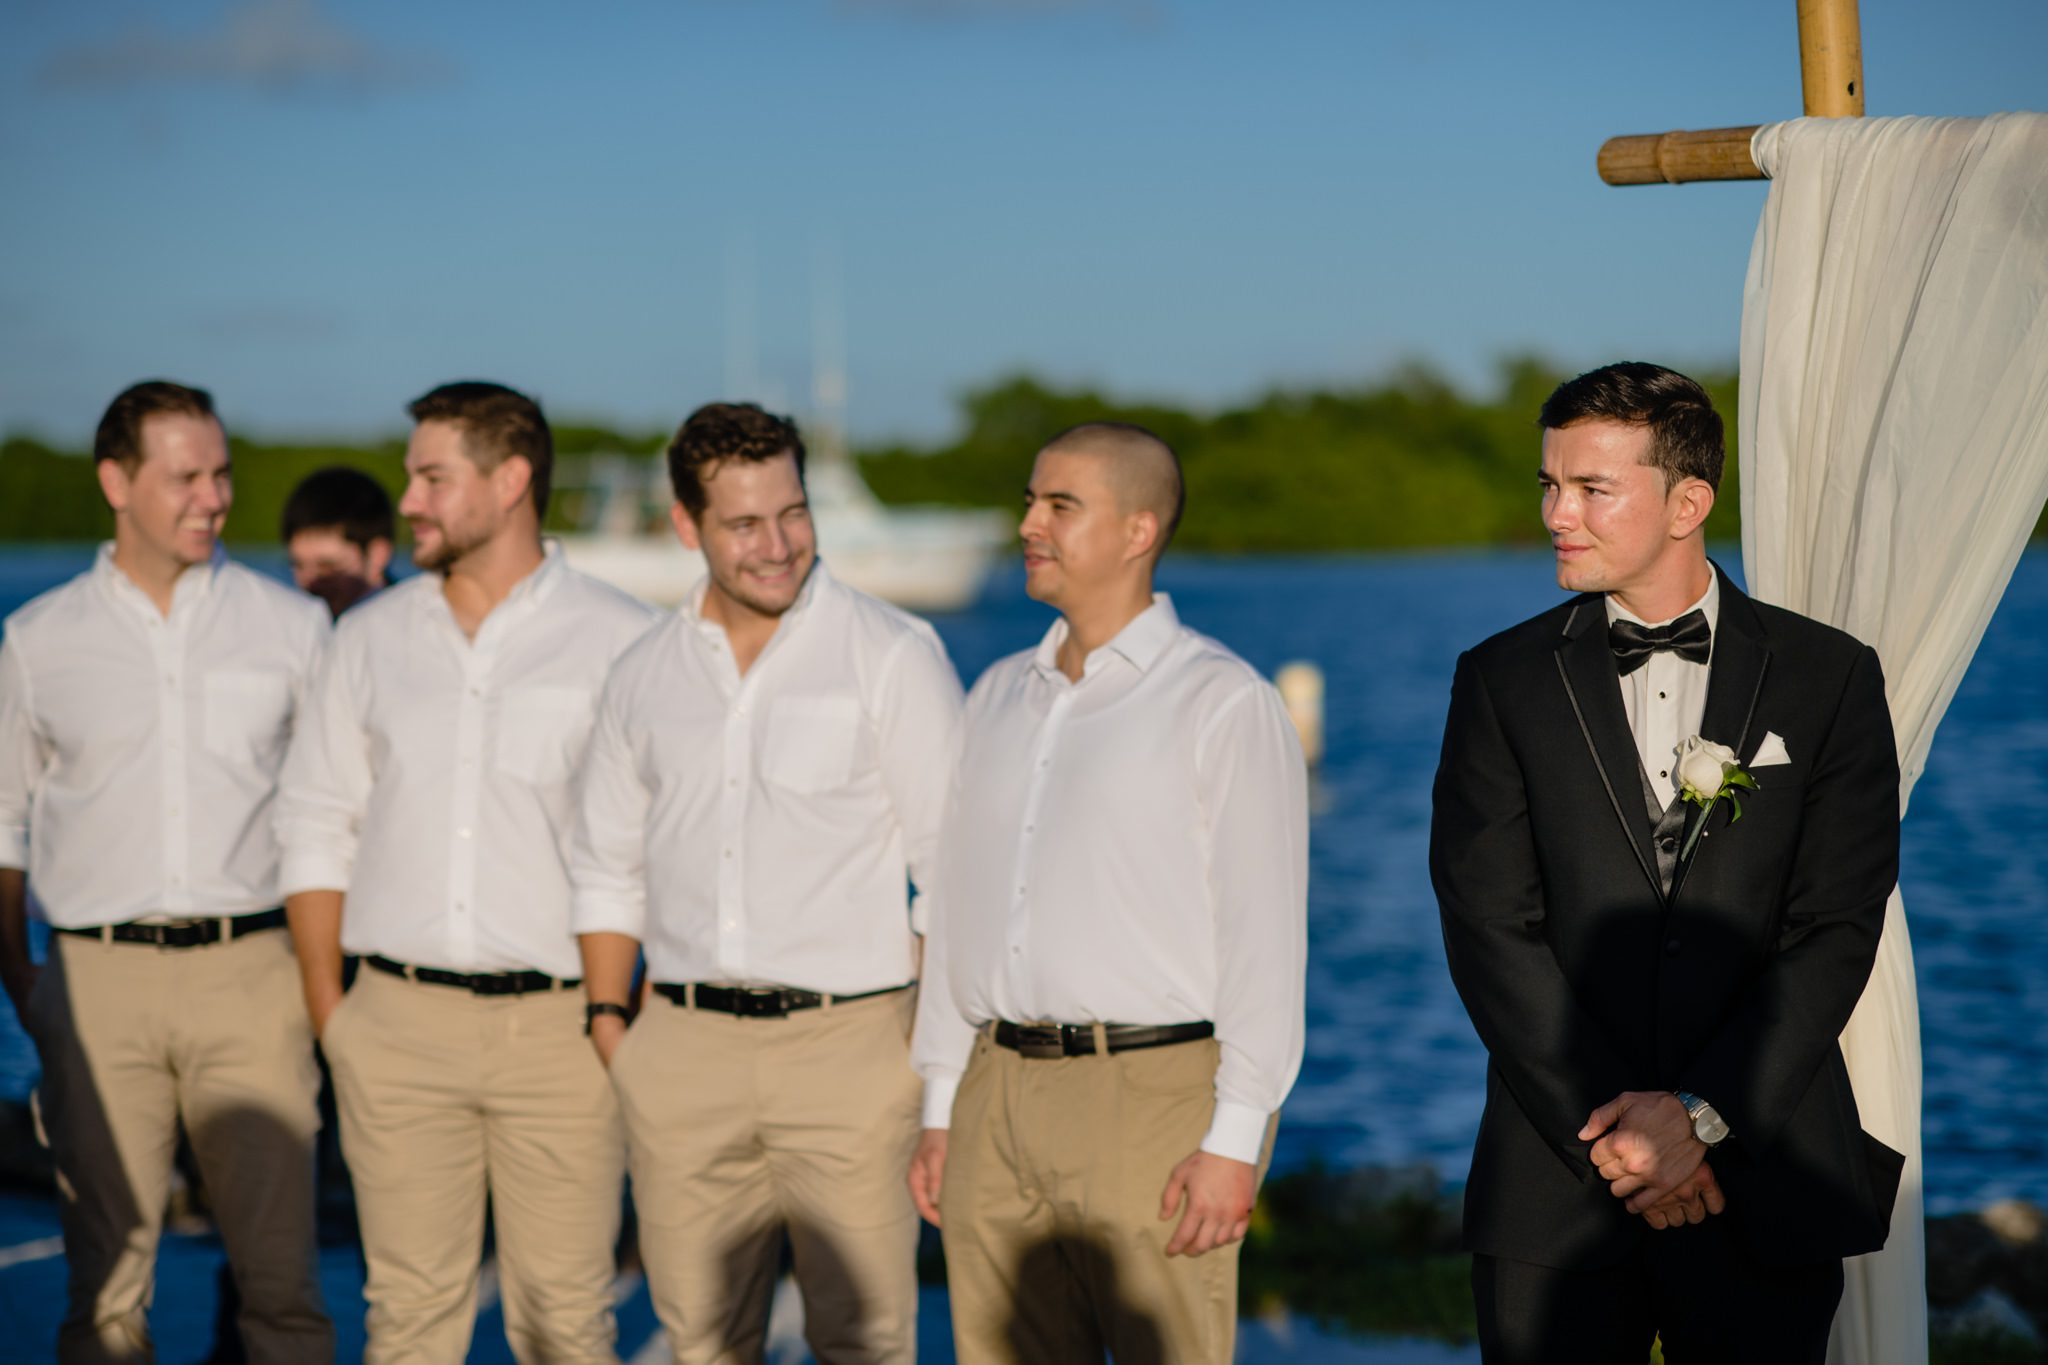 Groomsmen standing with ocean in the background at a key west yacht club.